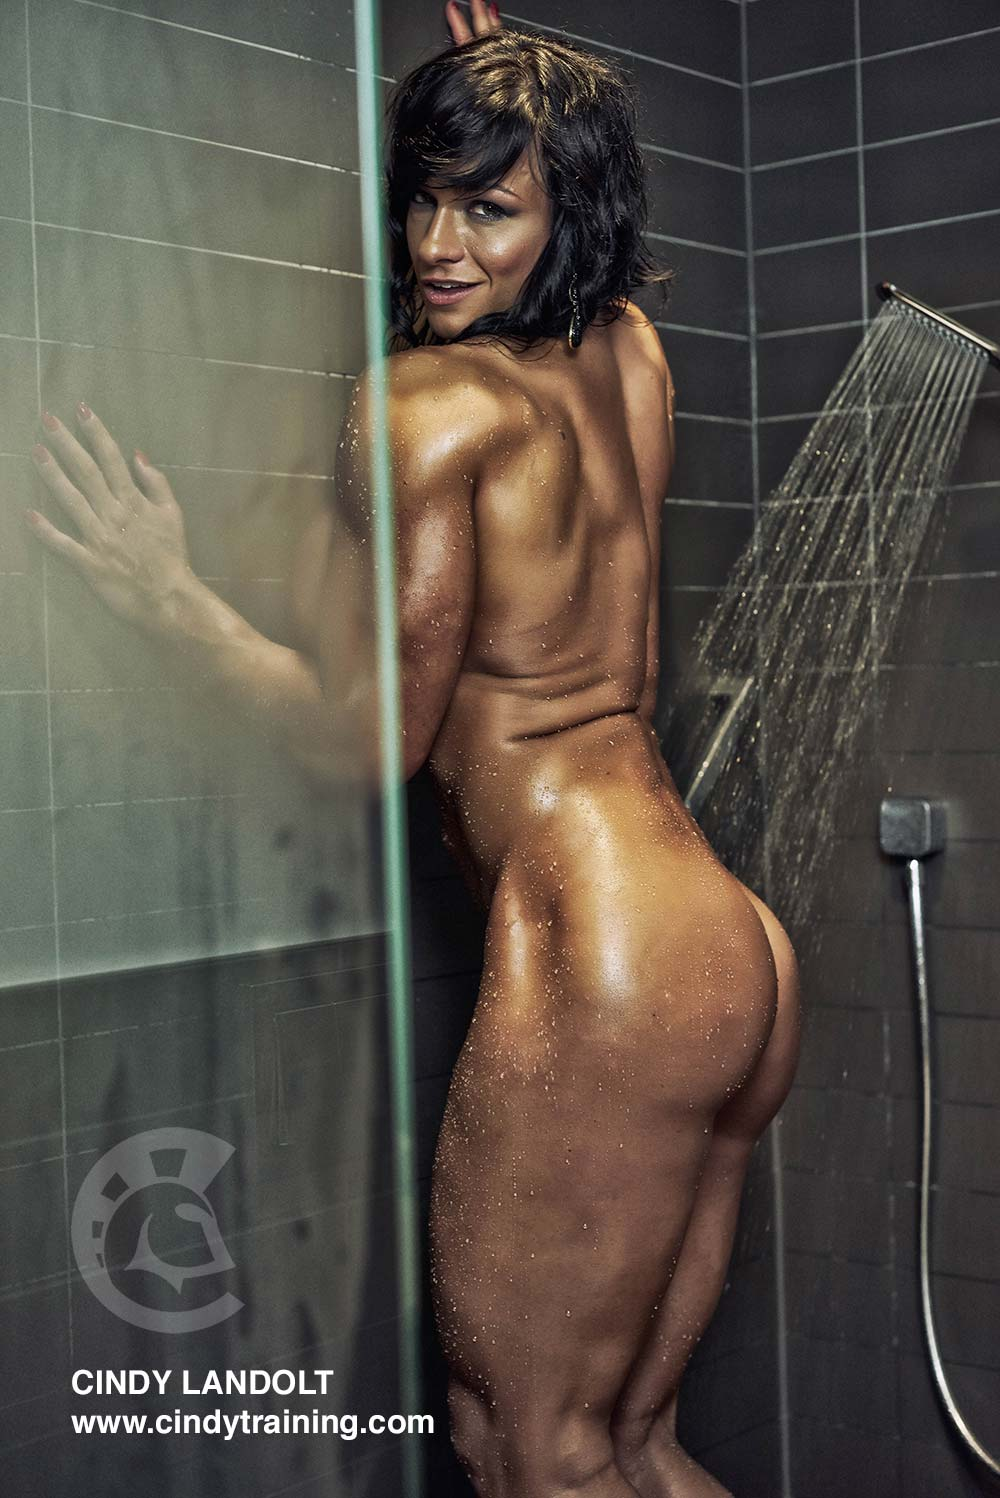 Misty anderson bare naked and wet in the shower